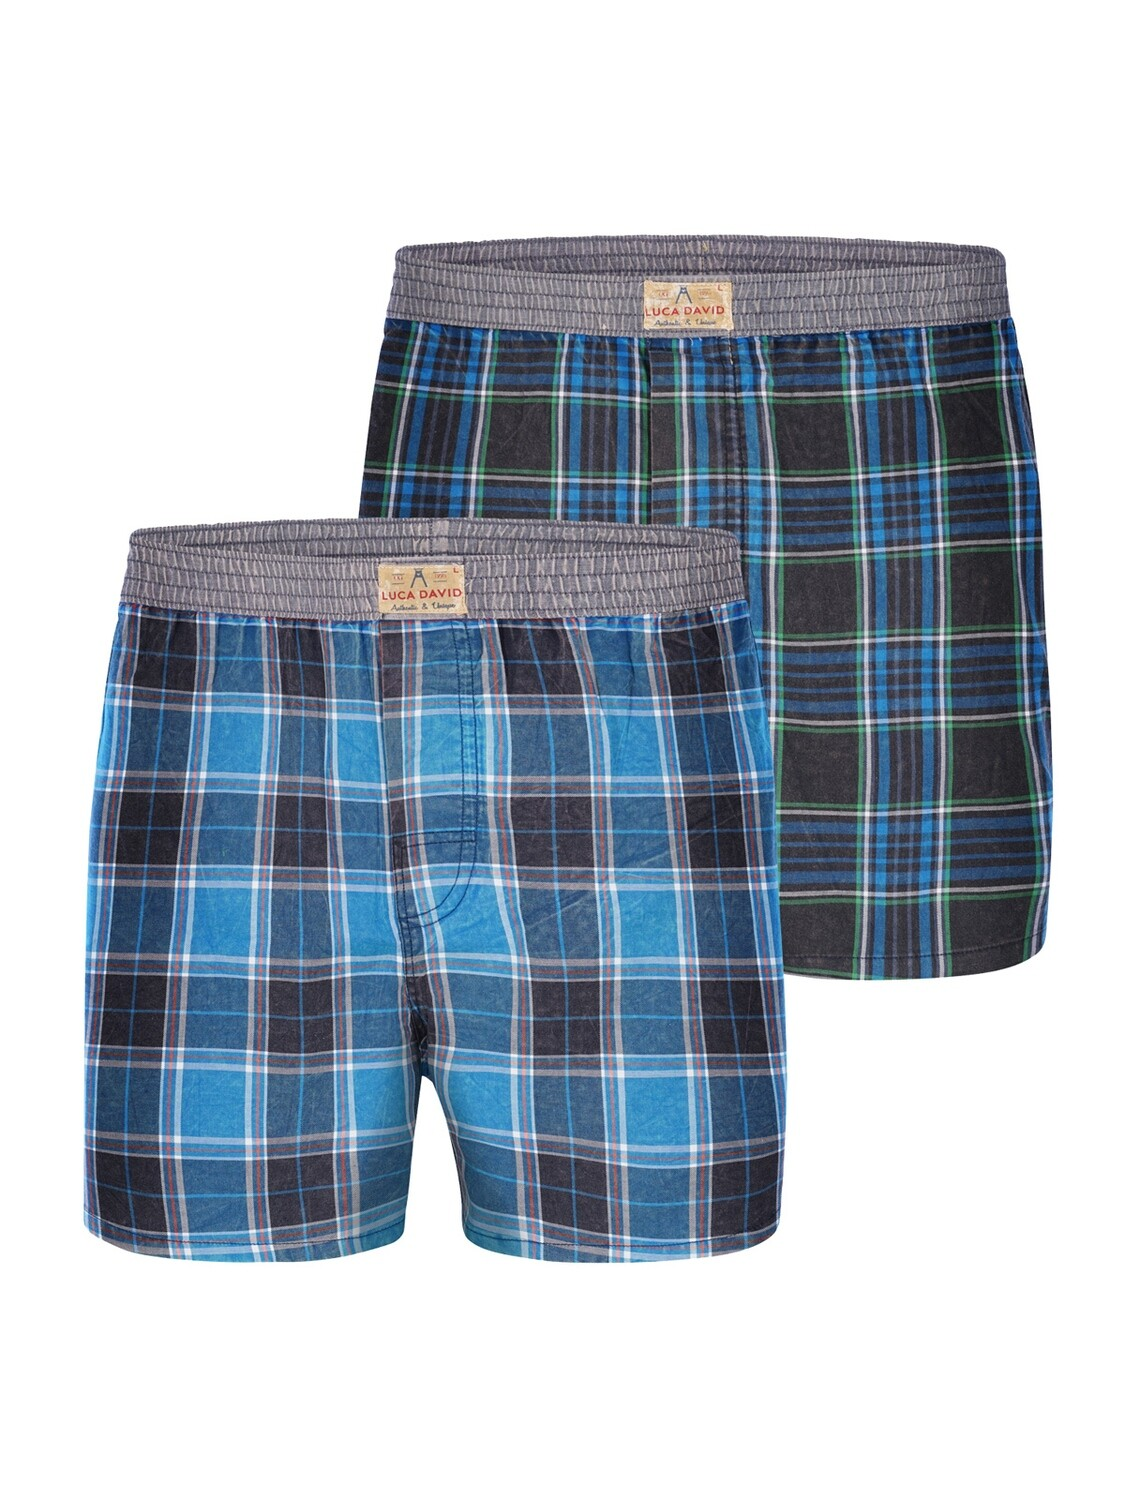 LUCA DAVID Olden Glory 2Pack Boxershorts